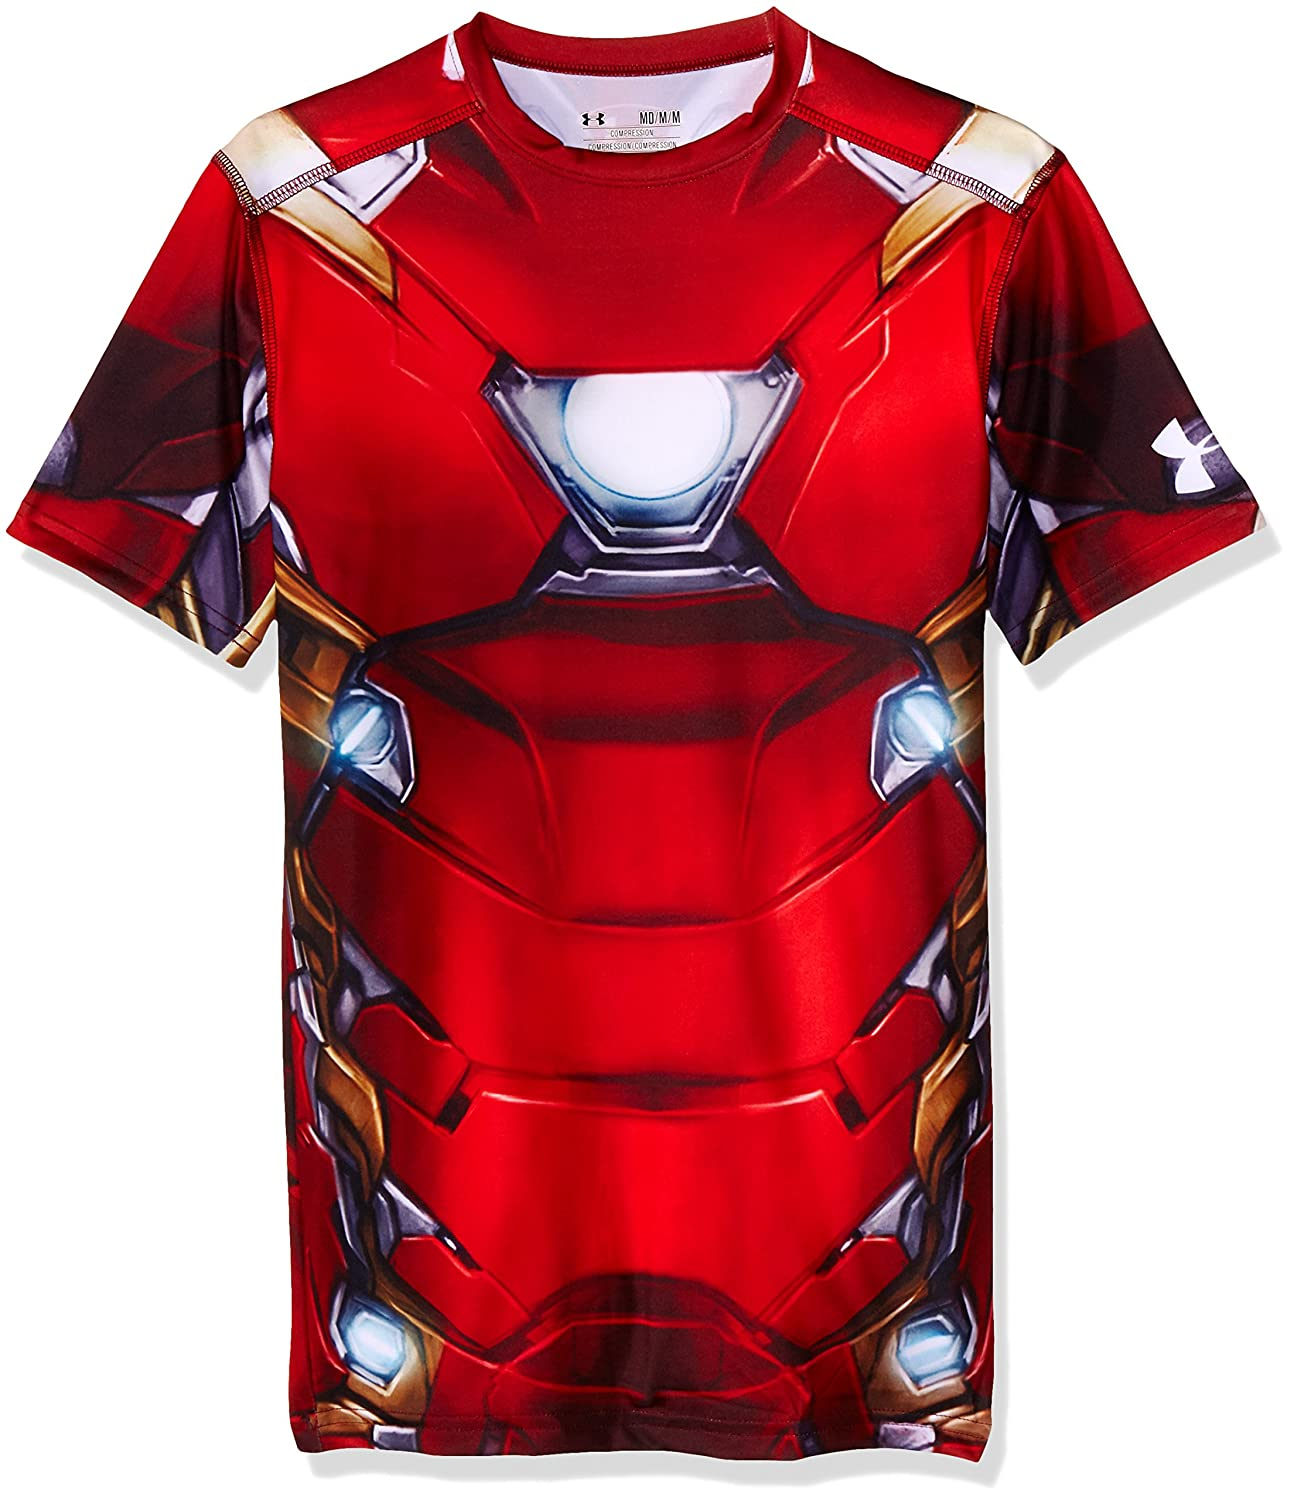 Under Armour Men 's Alter Ego Iron Man圧縮シャツ M